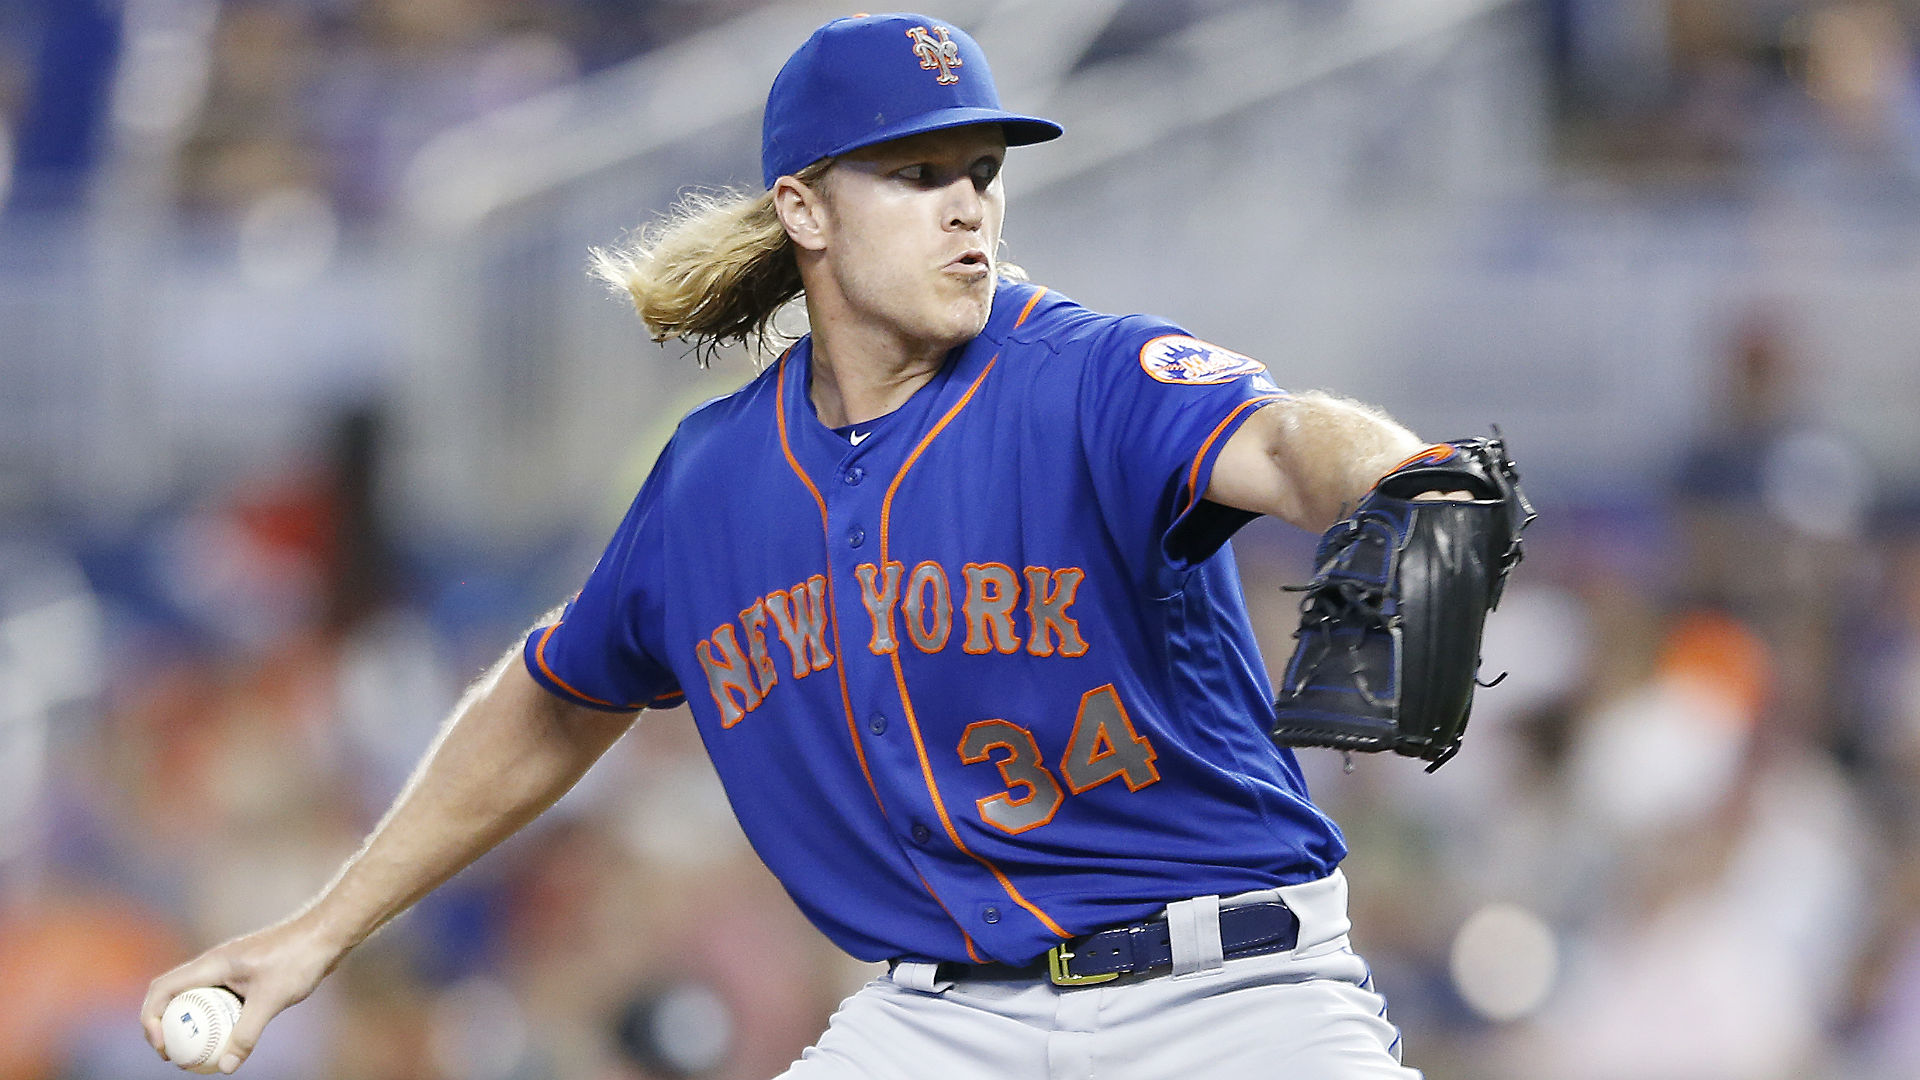 MLB trade rumors: Twins eyeing Madison Bumgarner, Noah Syndergaard, other arms, report says